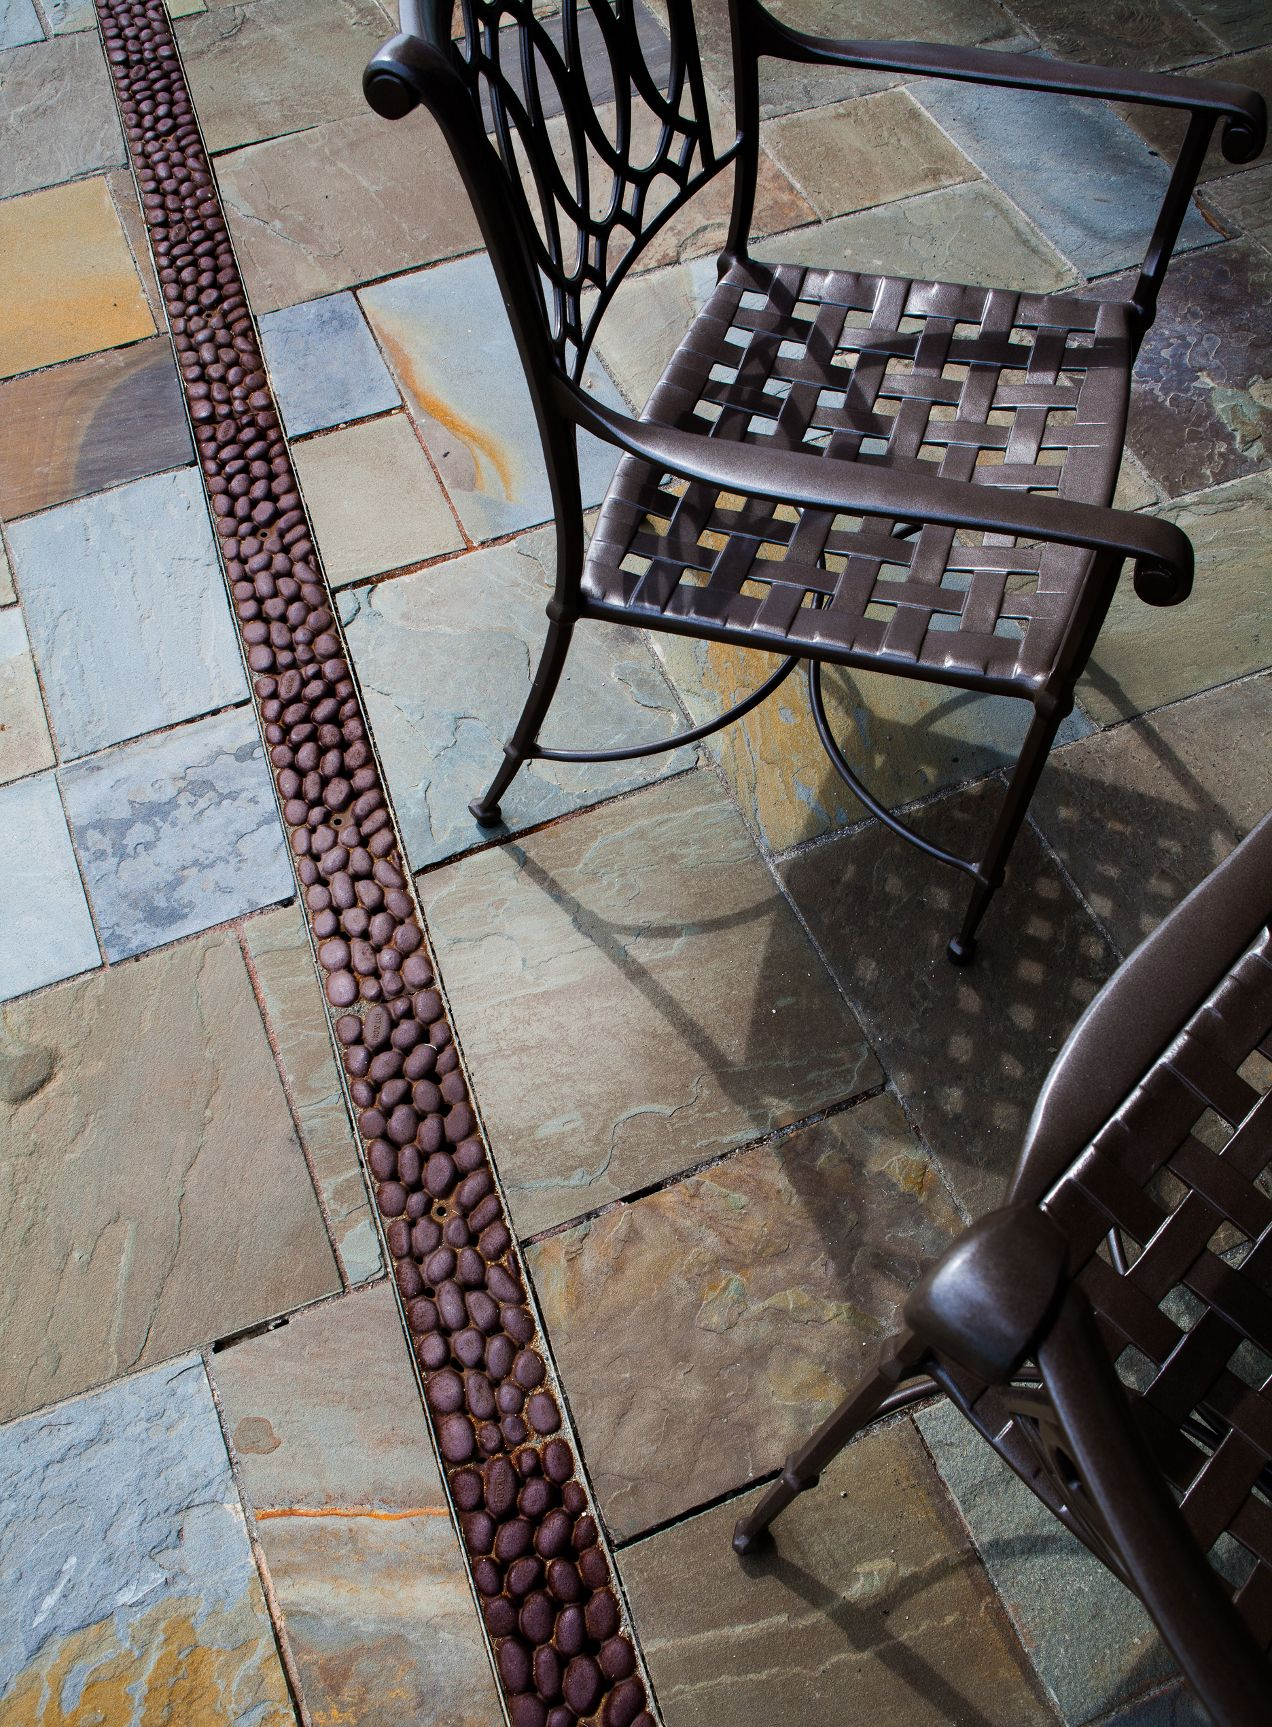 River rock trench drain iron age grates patios and pools made in the usa iron age designs drain cover dailygadgetfo Choice Image